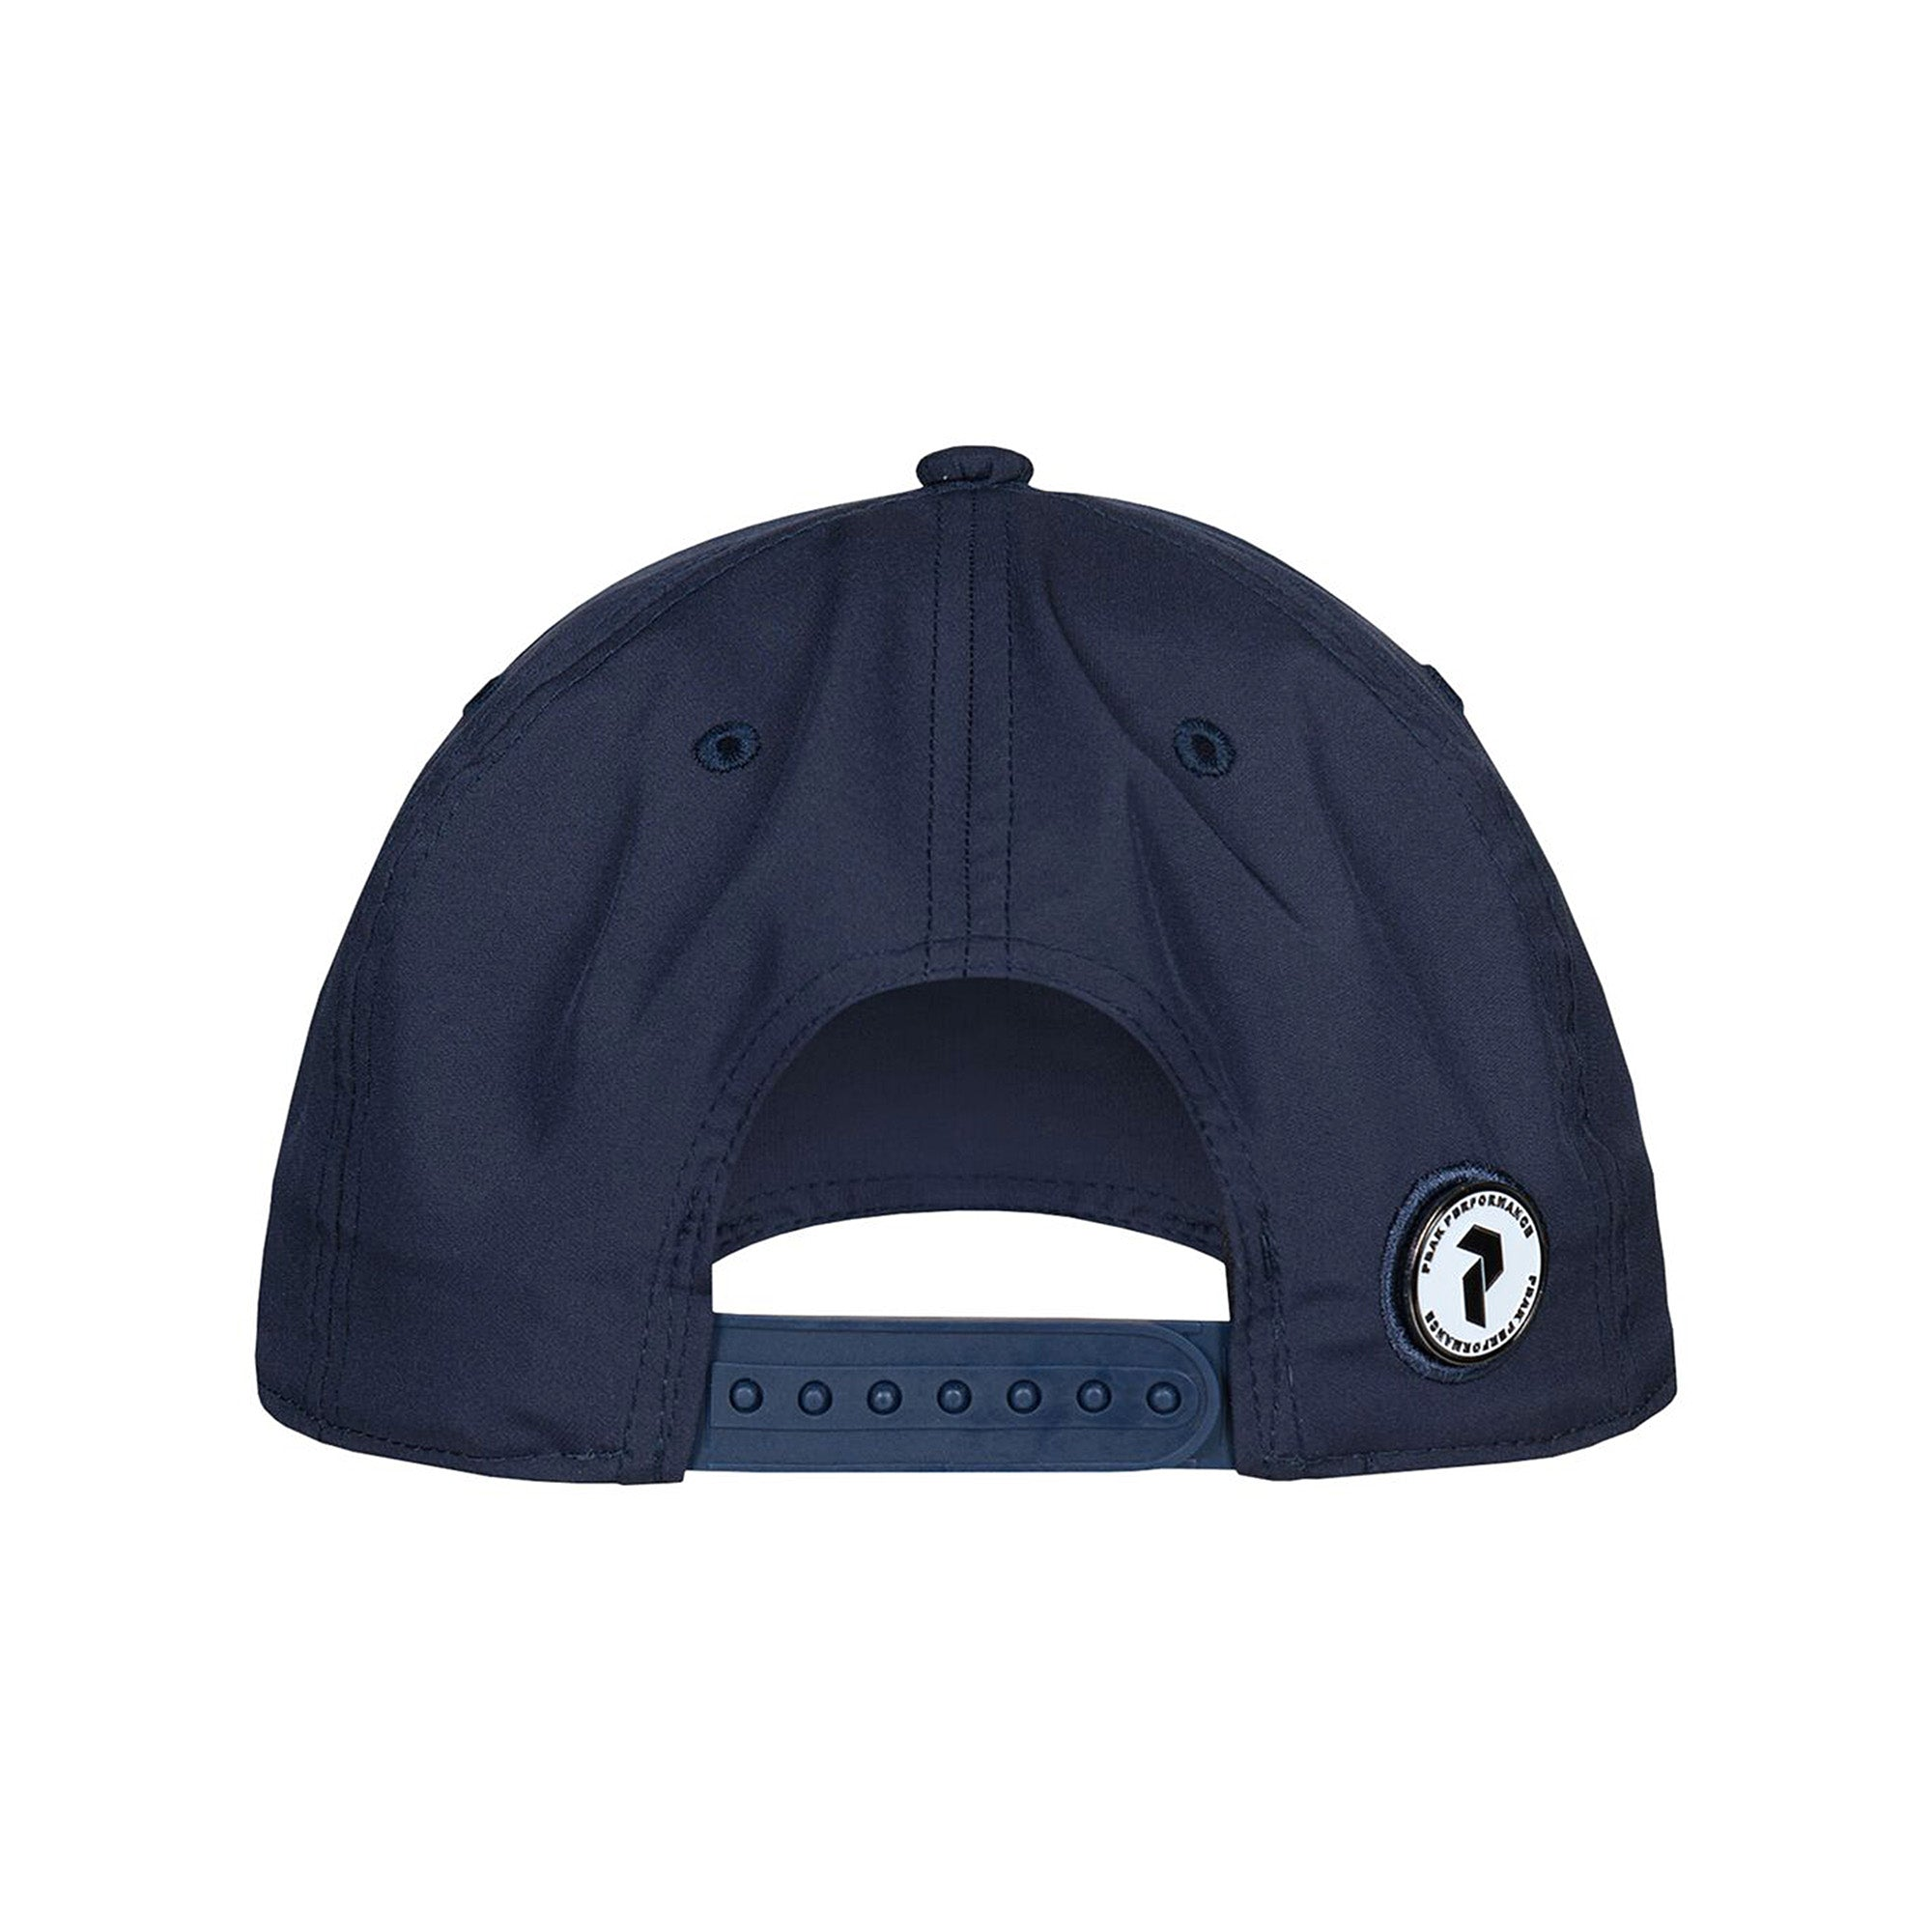 Peak Performance Players Cap